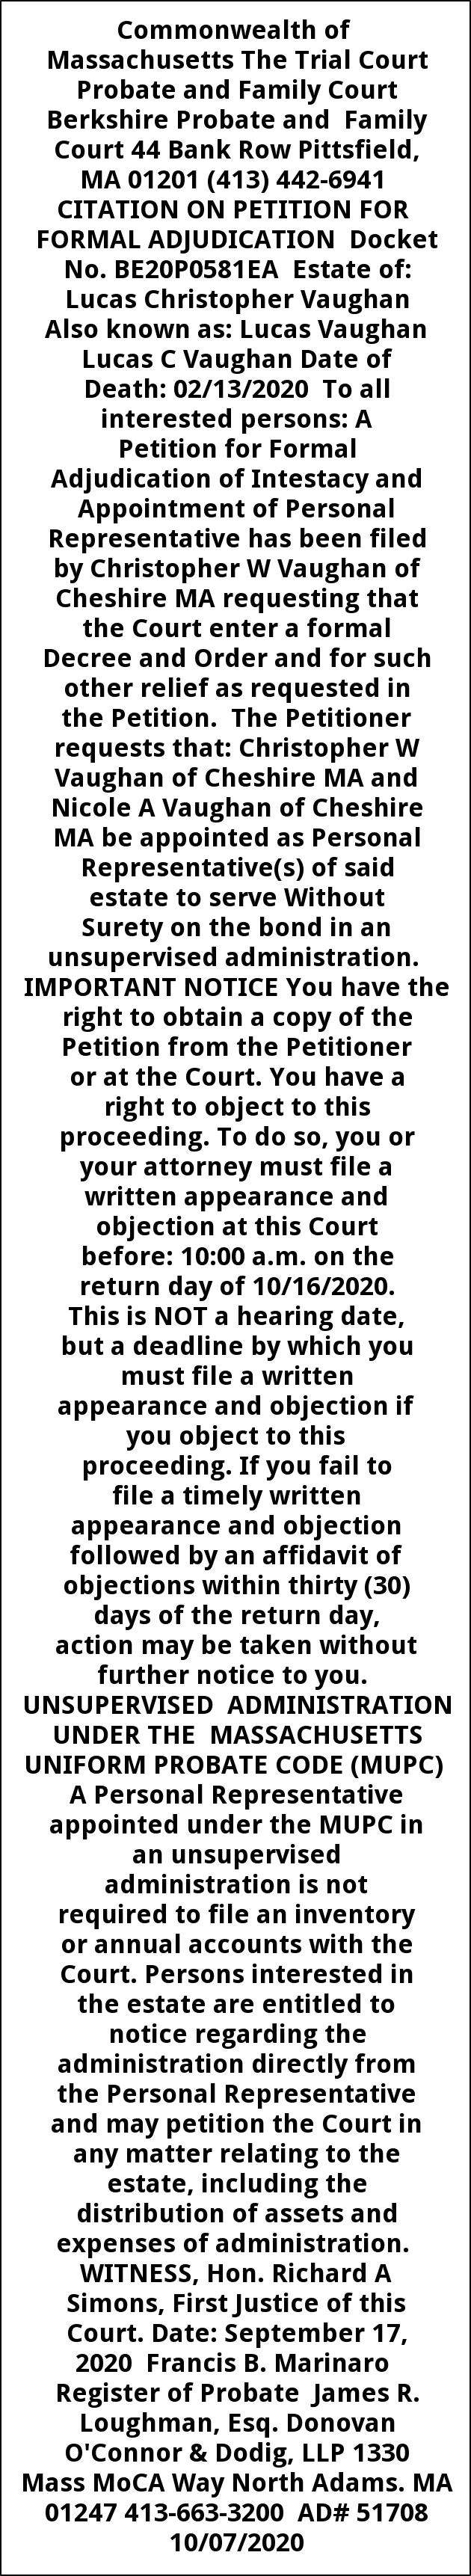 Citation On Petition for Formal Adjudicaton